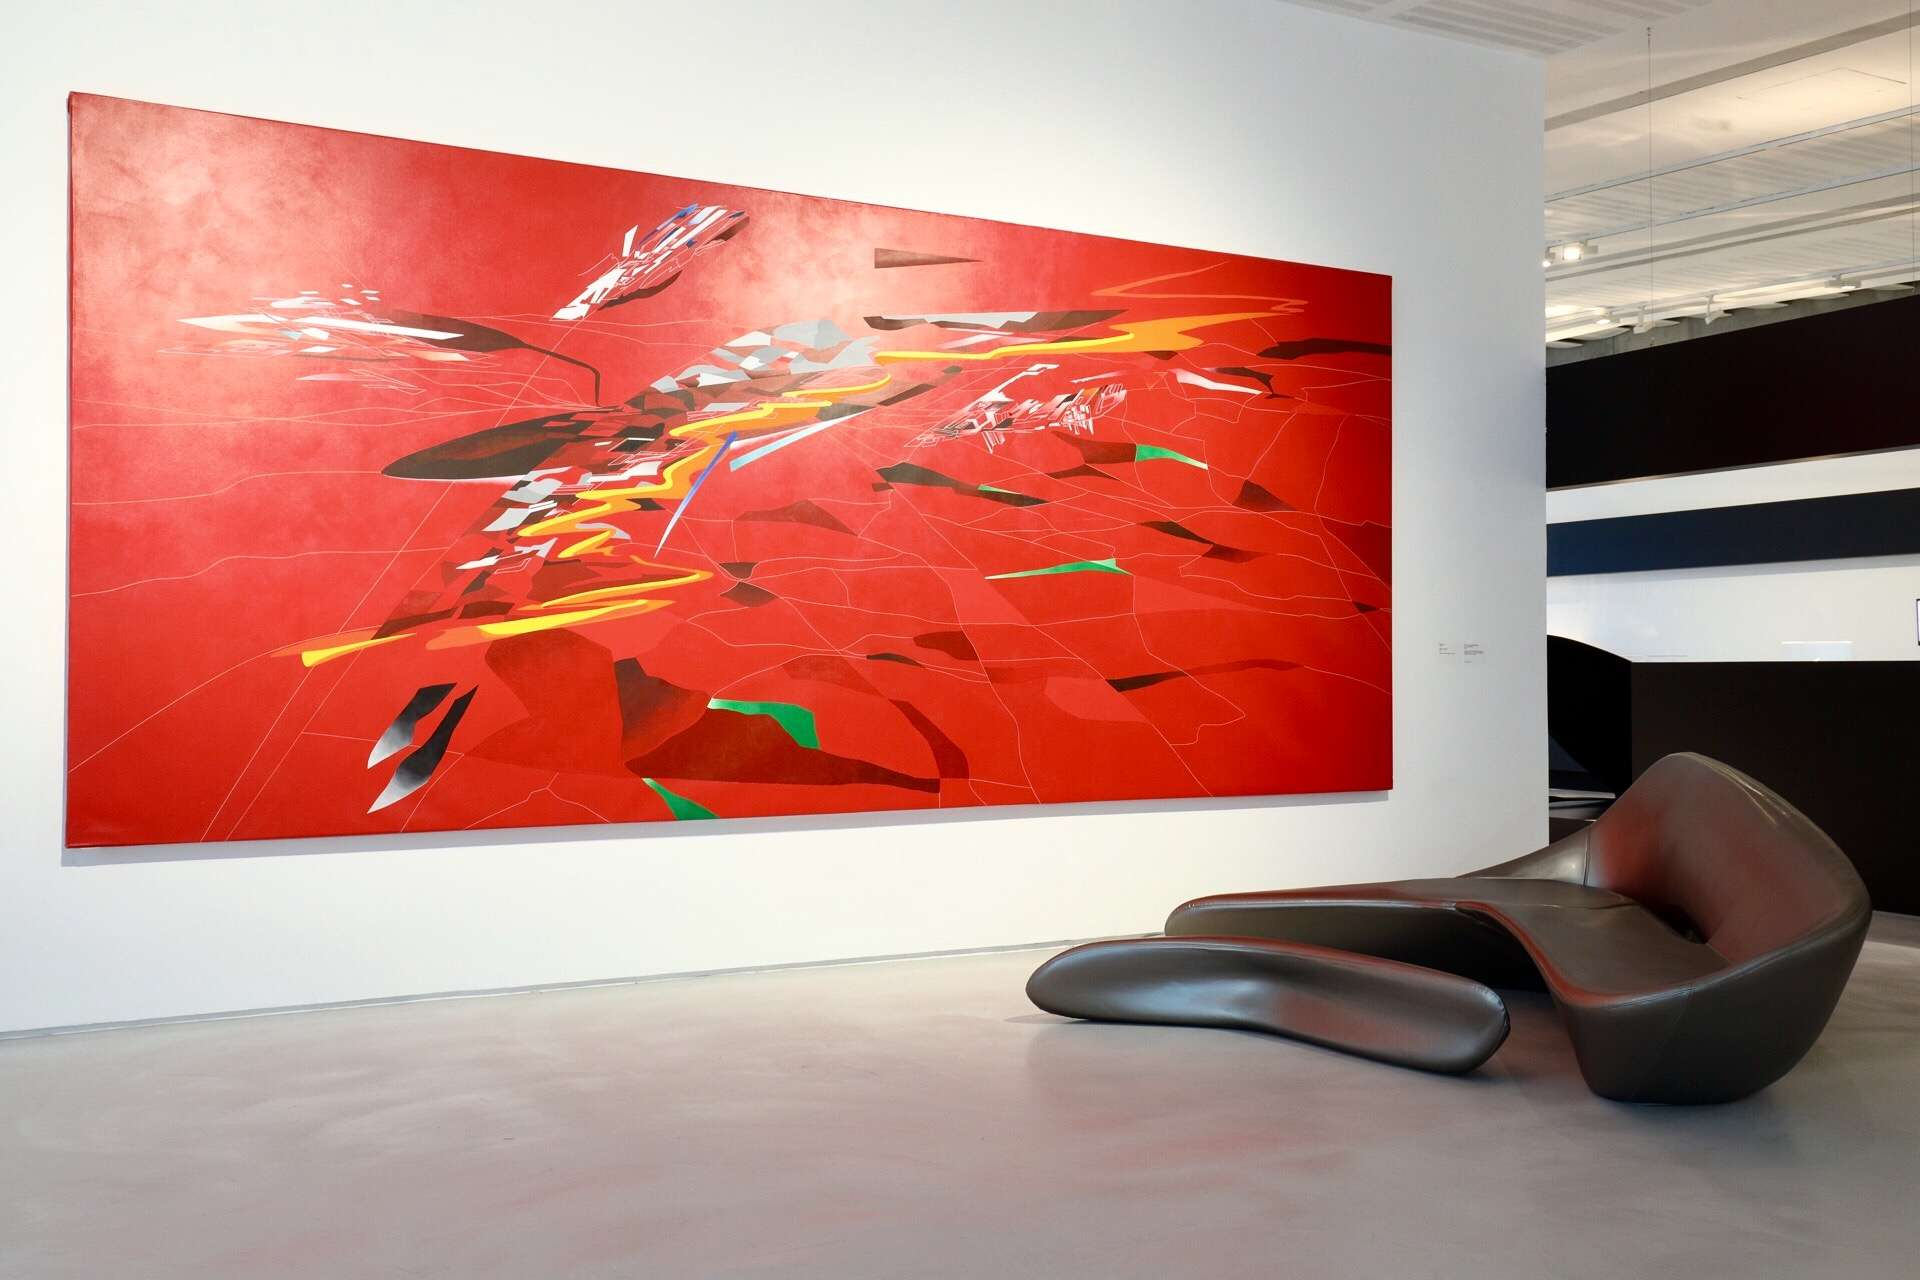 The  Moon System  featured in the  'Zaha Hadid in Italy'  exhibition, along with models, conceptual renderings and deconstructivist painting by  Zaha Hadid .Photo Musacchio & Ianniello. Courtesy Fondazione MAXXI.